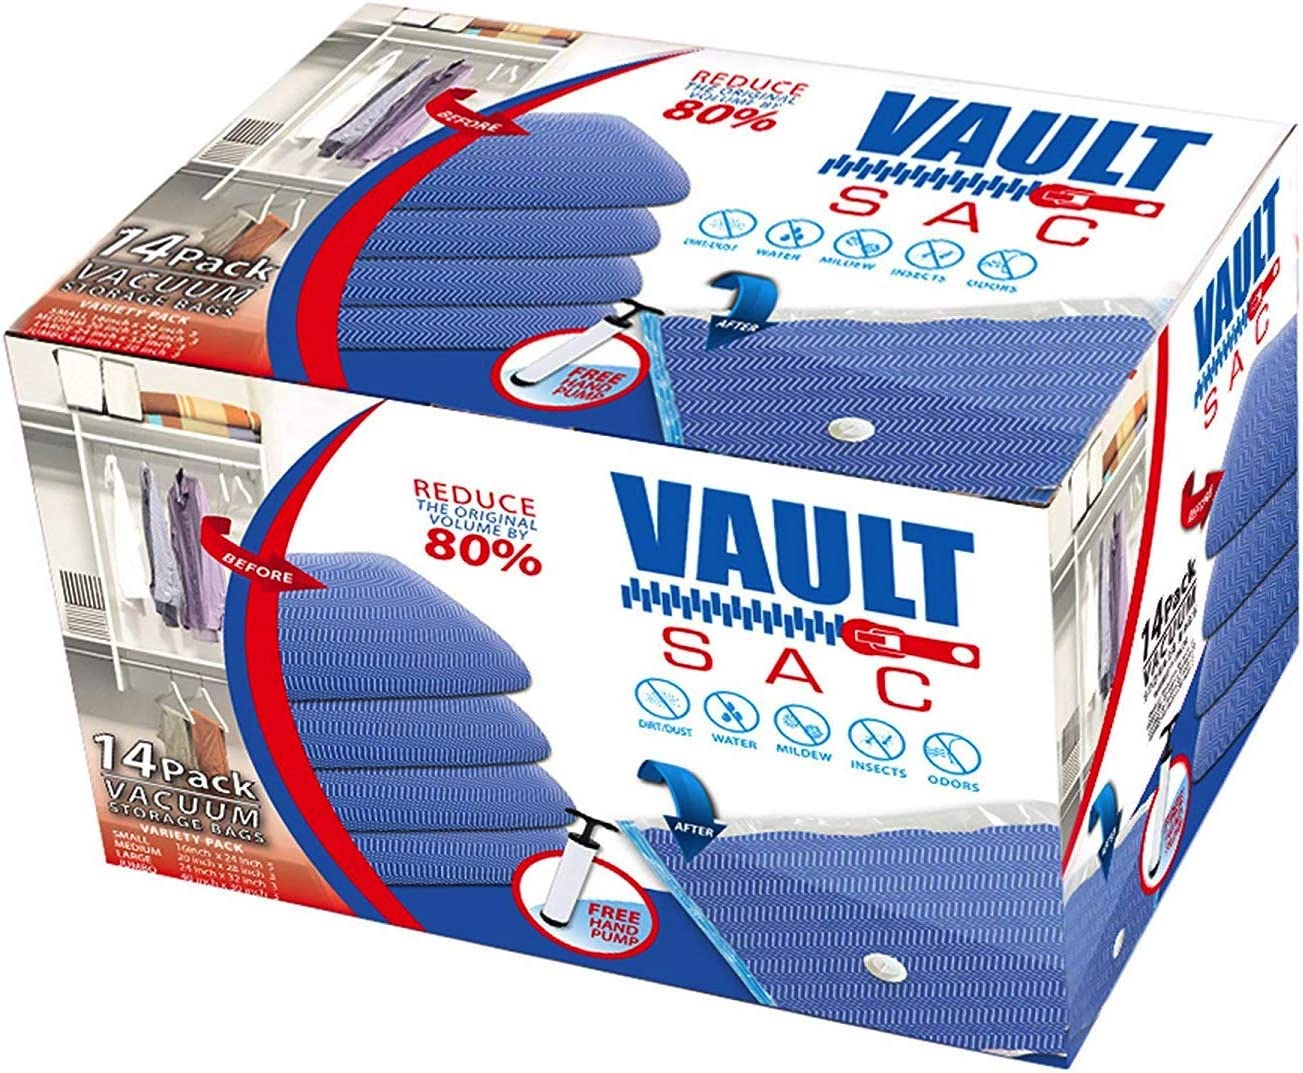 Vacuum Storage Bags | 14 PACK | 5 X JUMBO, 3 X LARGE, 3 X MEDIUM, 3 X SMALL | 80% MORE STORAGE for Clothes Blankets Duvets & Much More | Works with Any Vacuum Cleaner FREE Hand-Pump For Travel